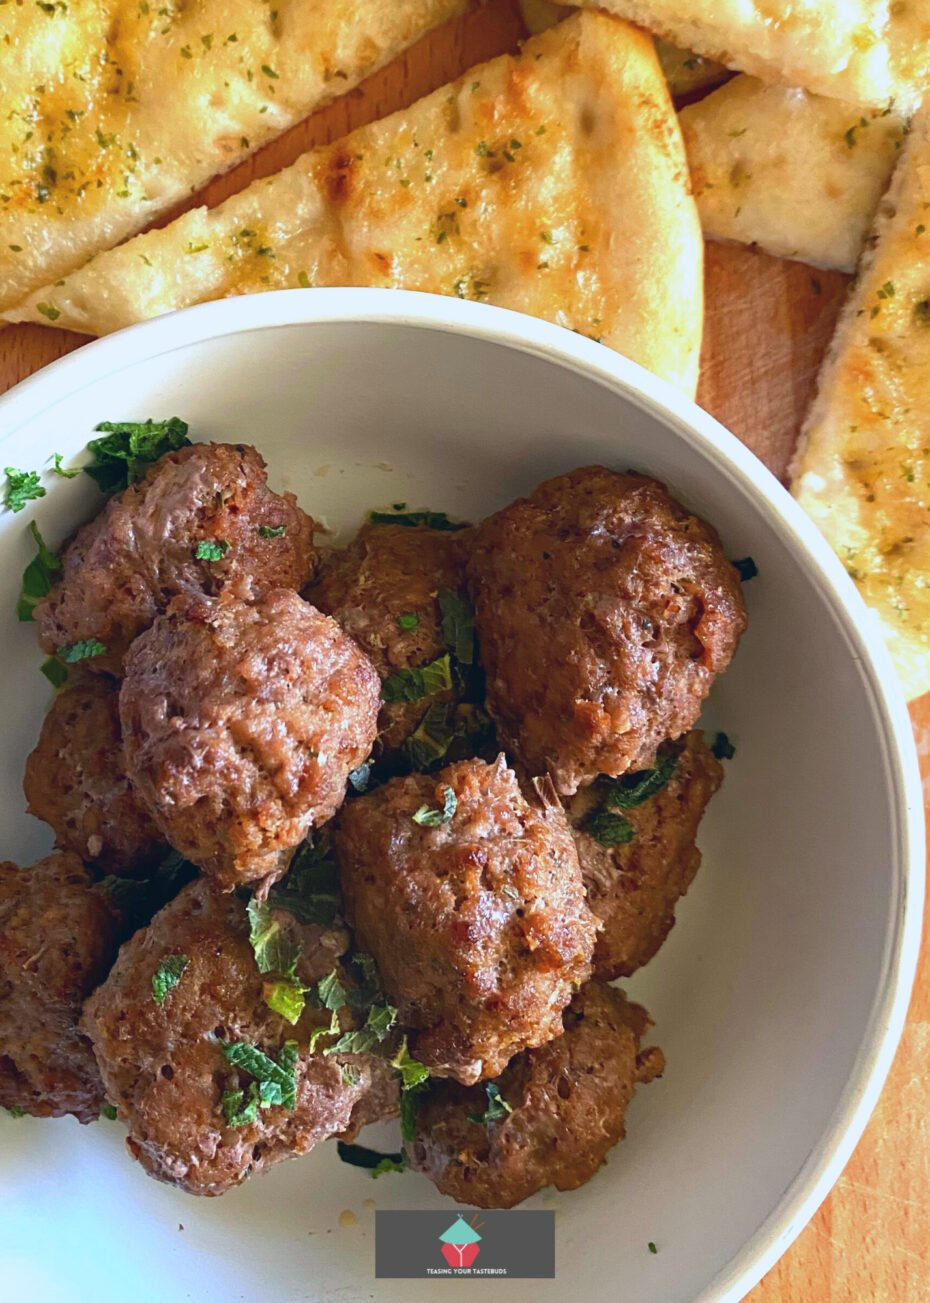 Juicy Homemade Meatballs are full of flavor, juicy, and simply delicious. These homemade meatballs are always a hit with the family. Here I've used some great ingredients to keep these super moist and of course really packed with flavor. Great to serve as party food or have as a dinner with some mash and gravy!